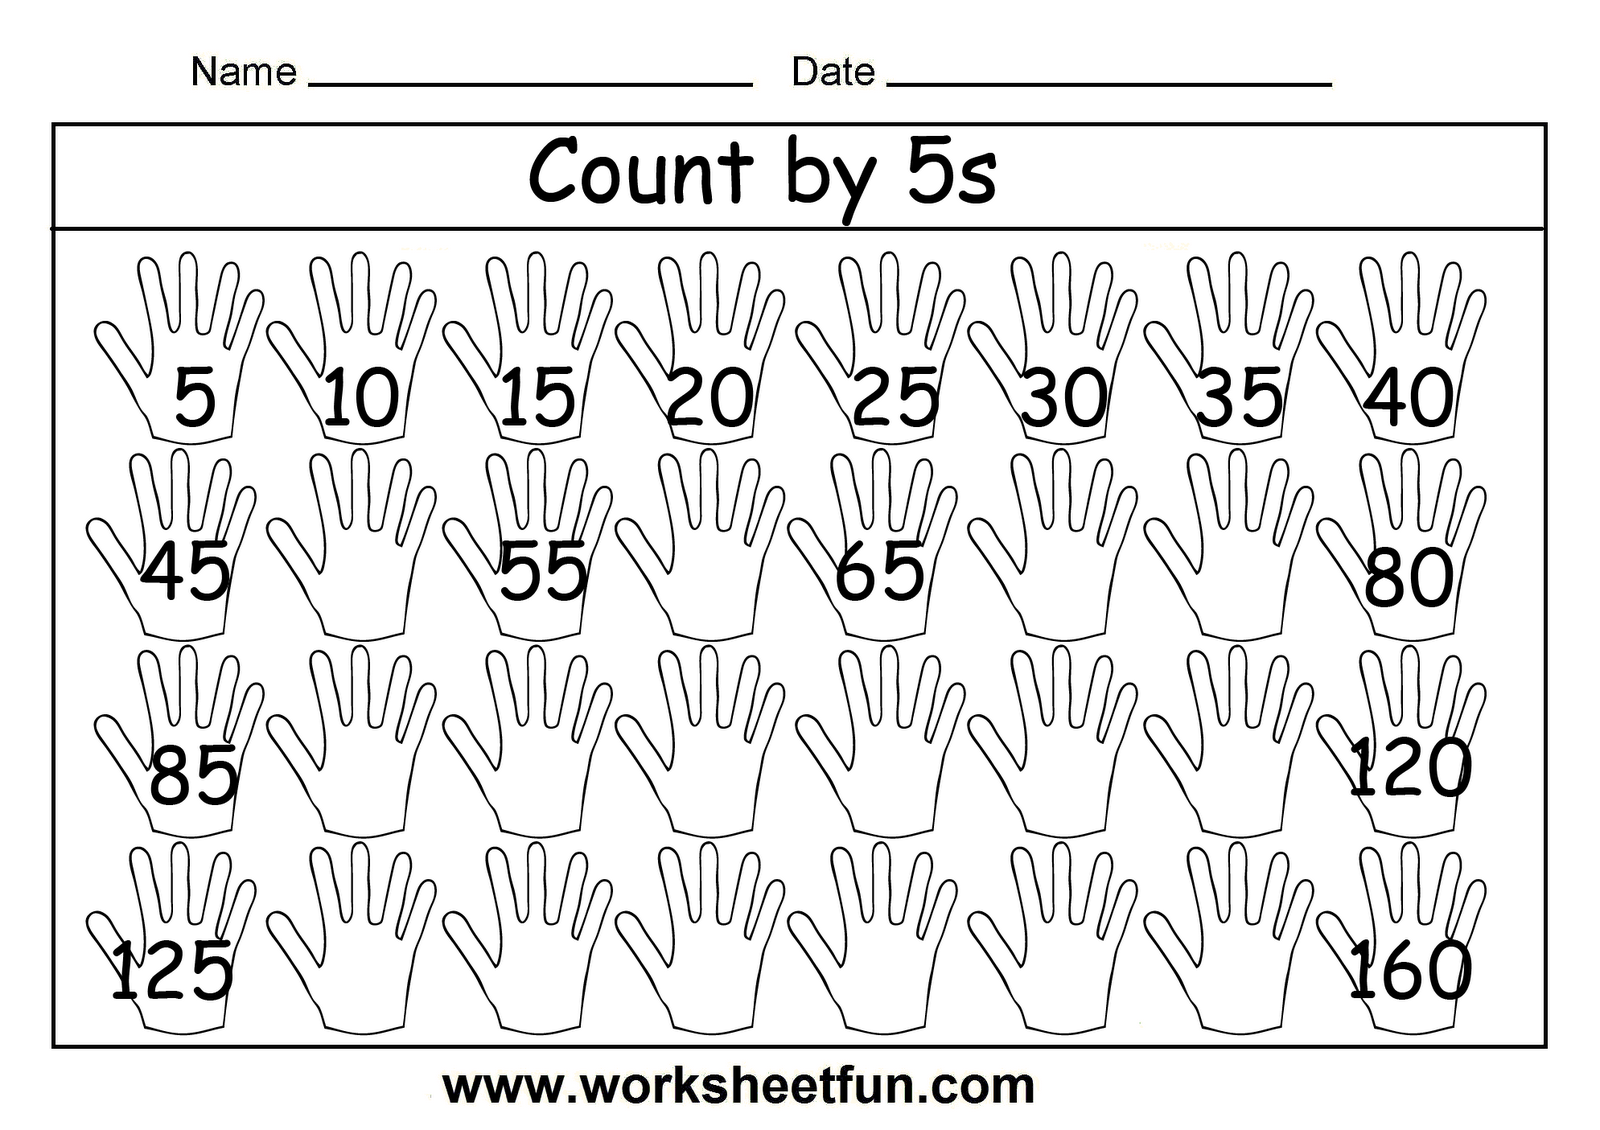 Worksheetfun - FREE PRINTABLE WORKSHEETS   Free printable math worksheets [ 1130 x 1600 Pixel ]